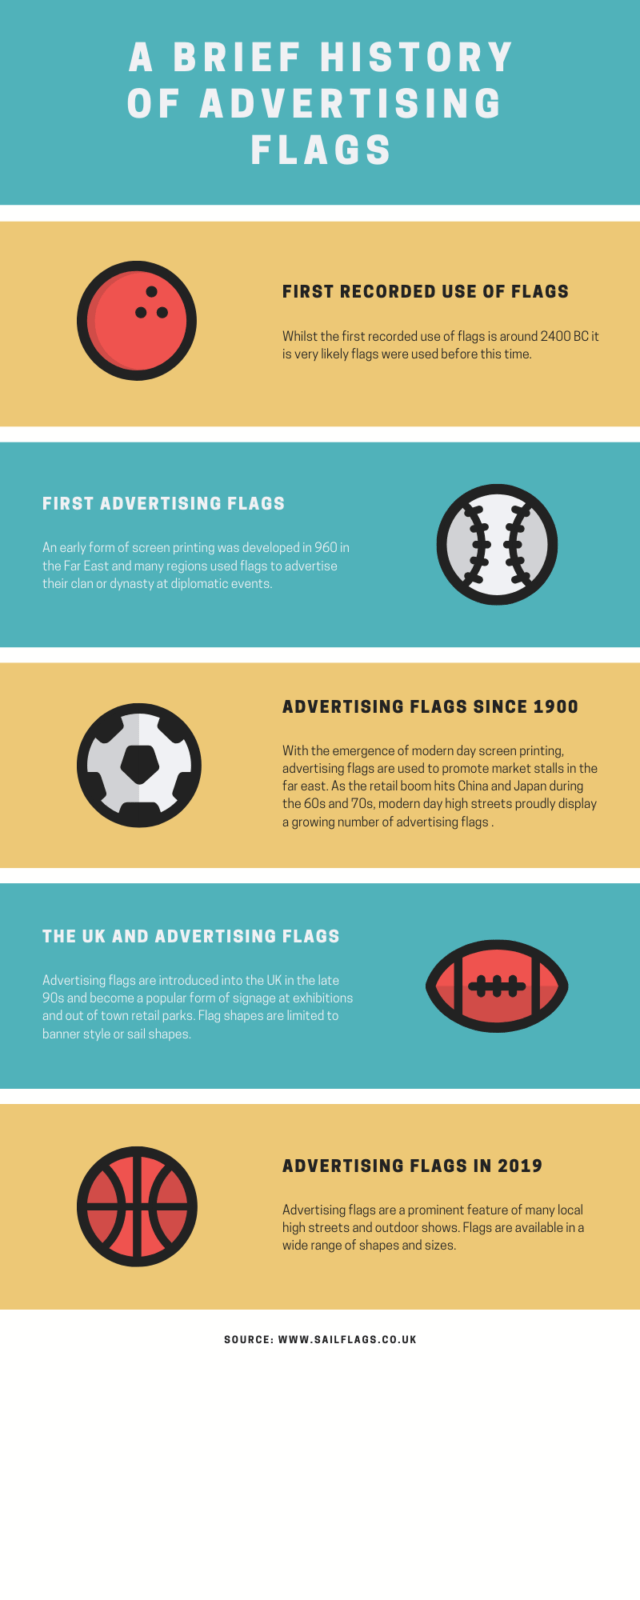 a brief history of advertising flags